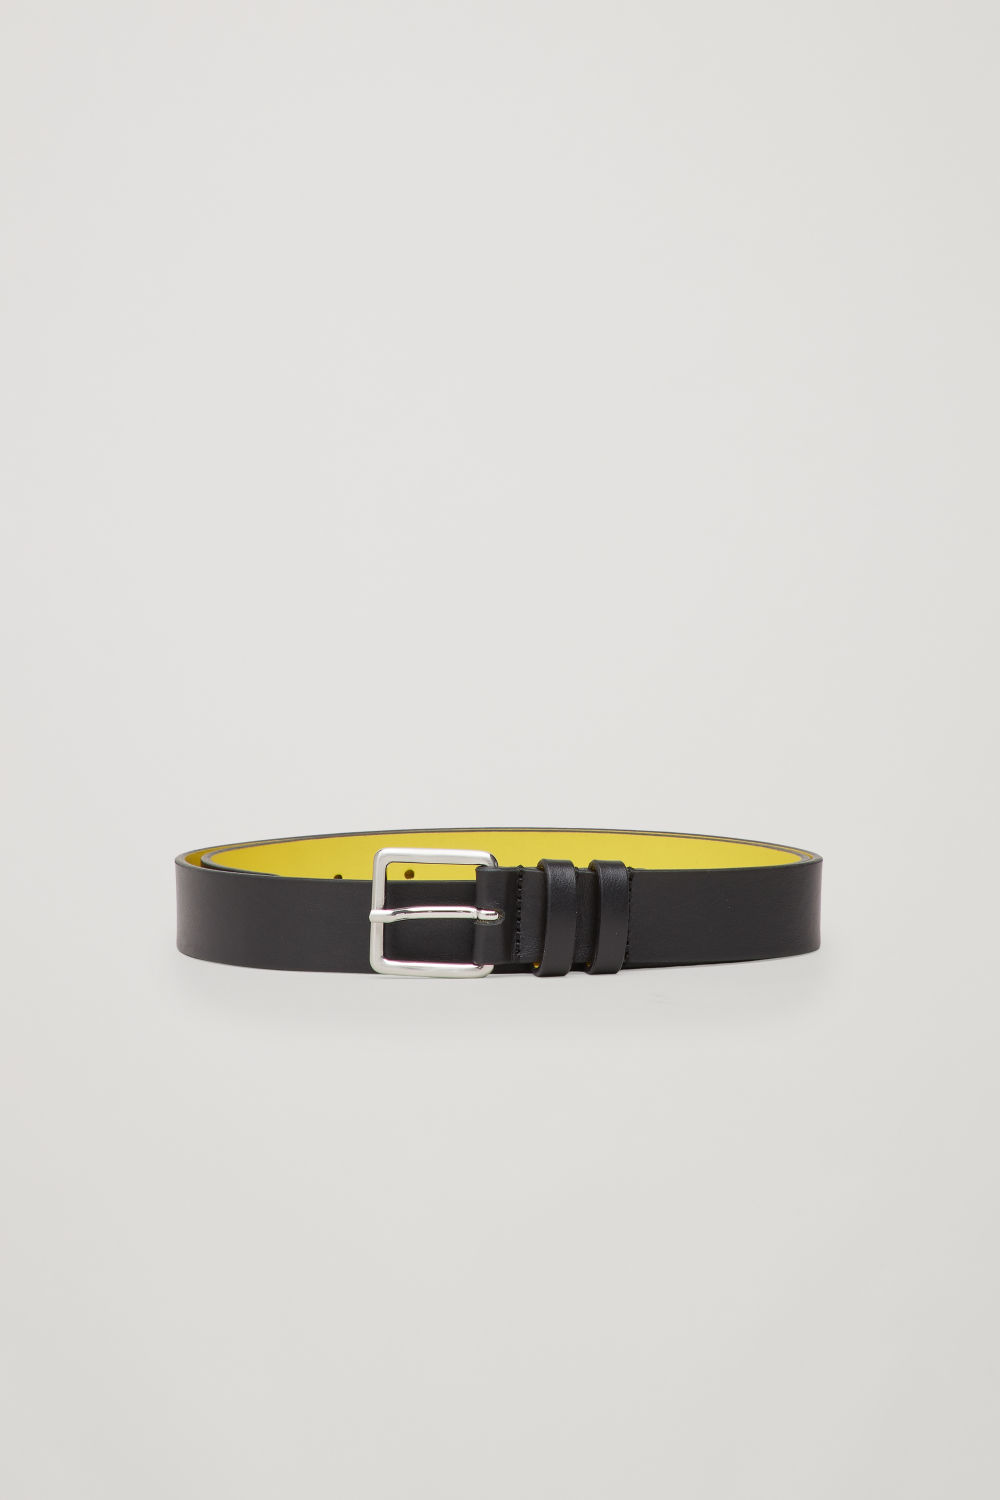 코스 COS CONTRAST LEATHER BELT,Black \/ acid yellow